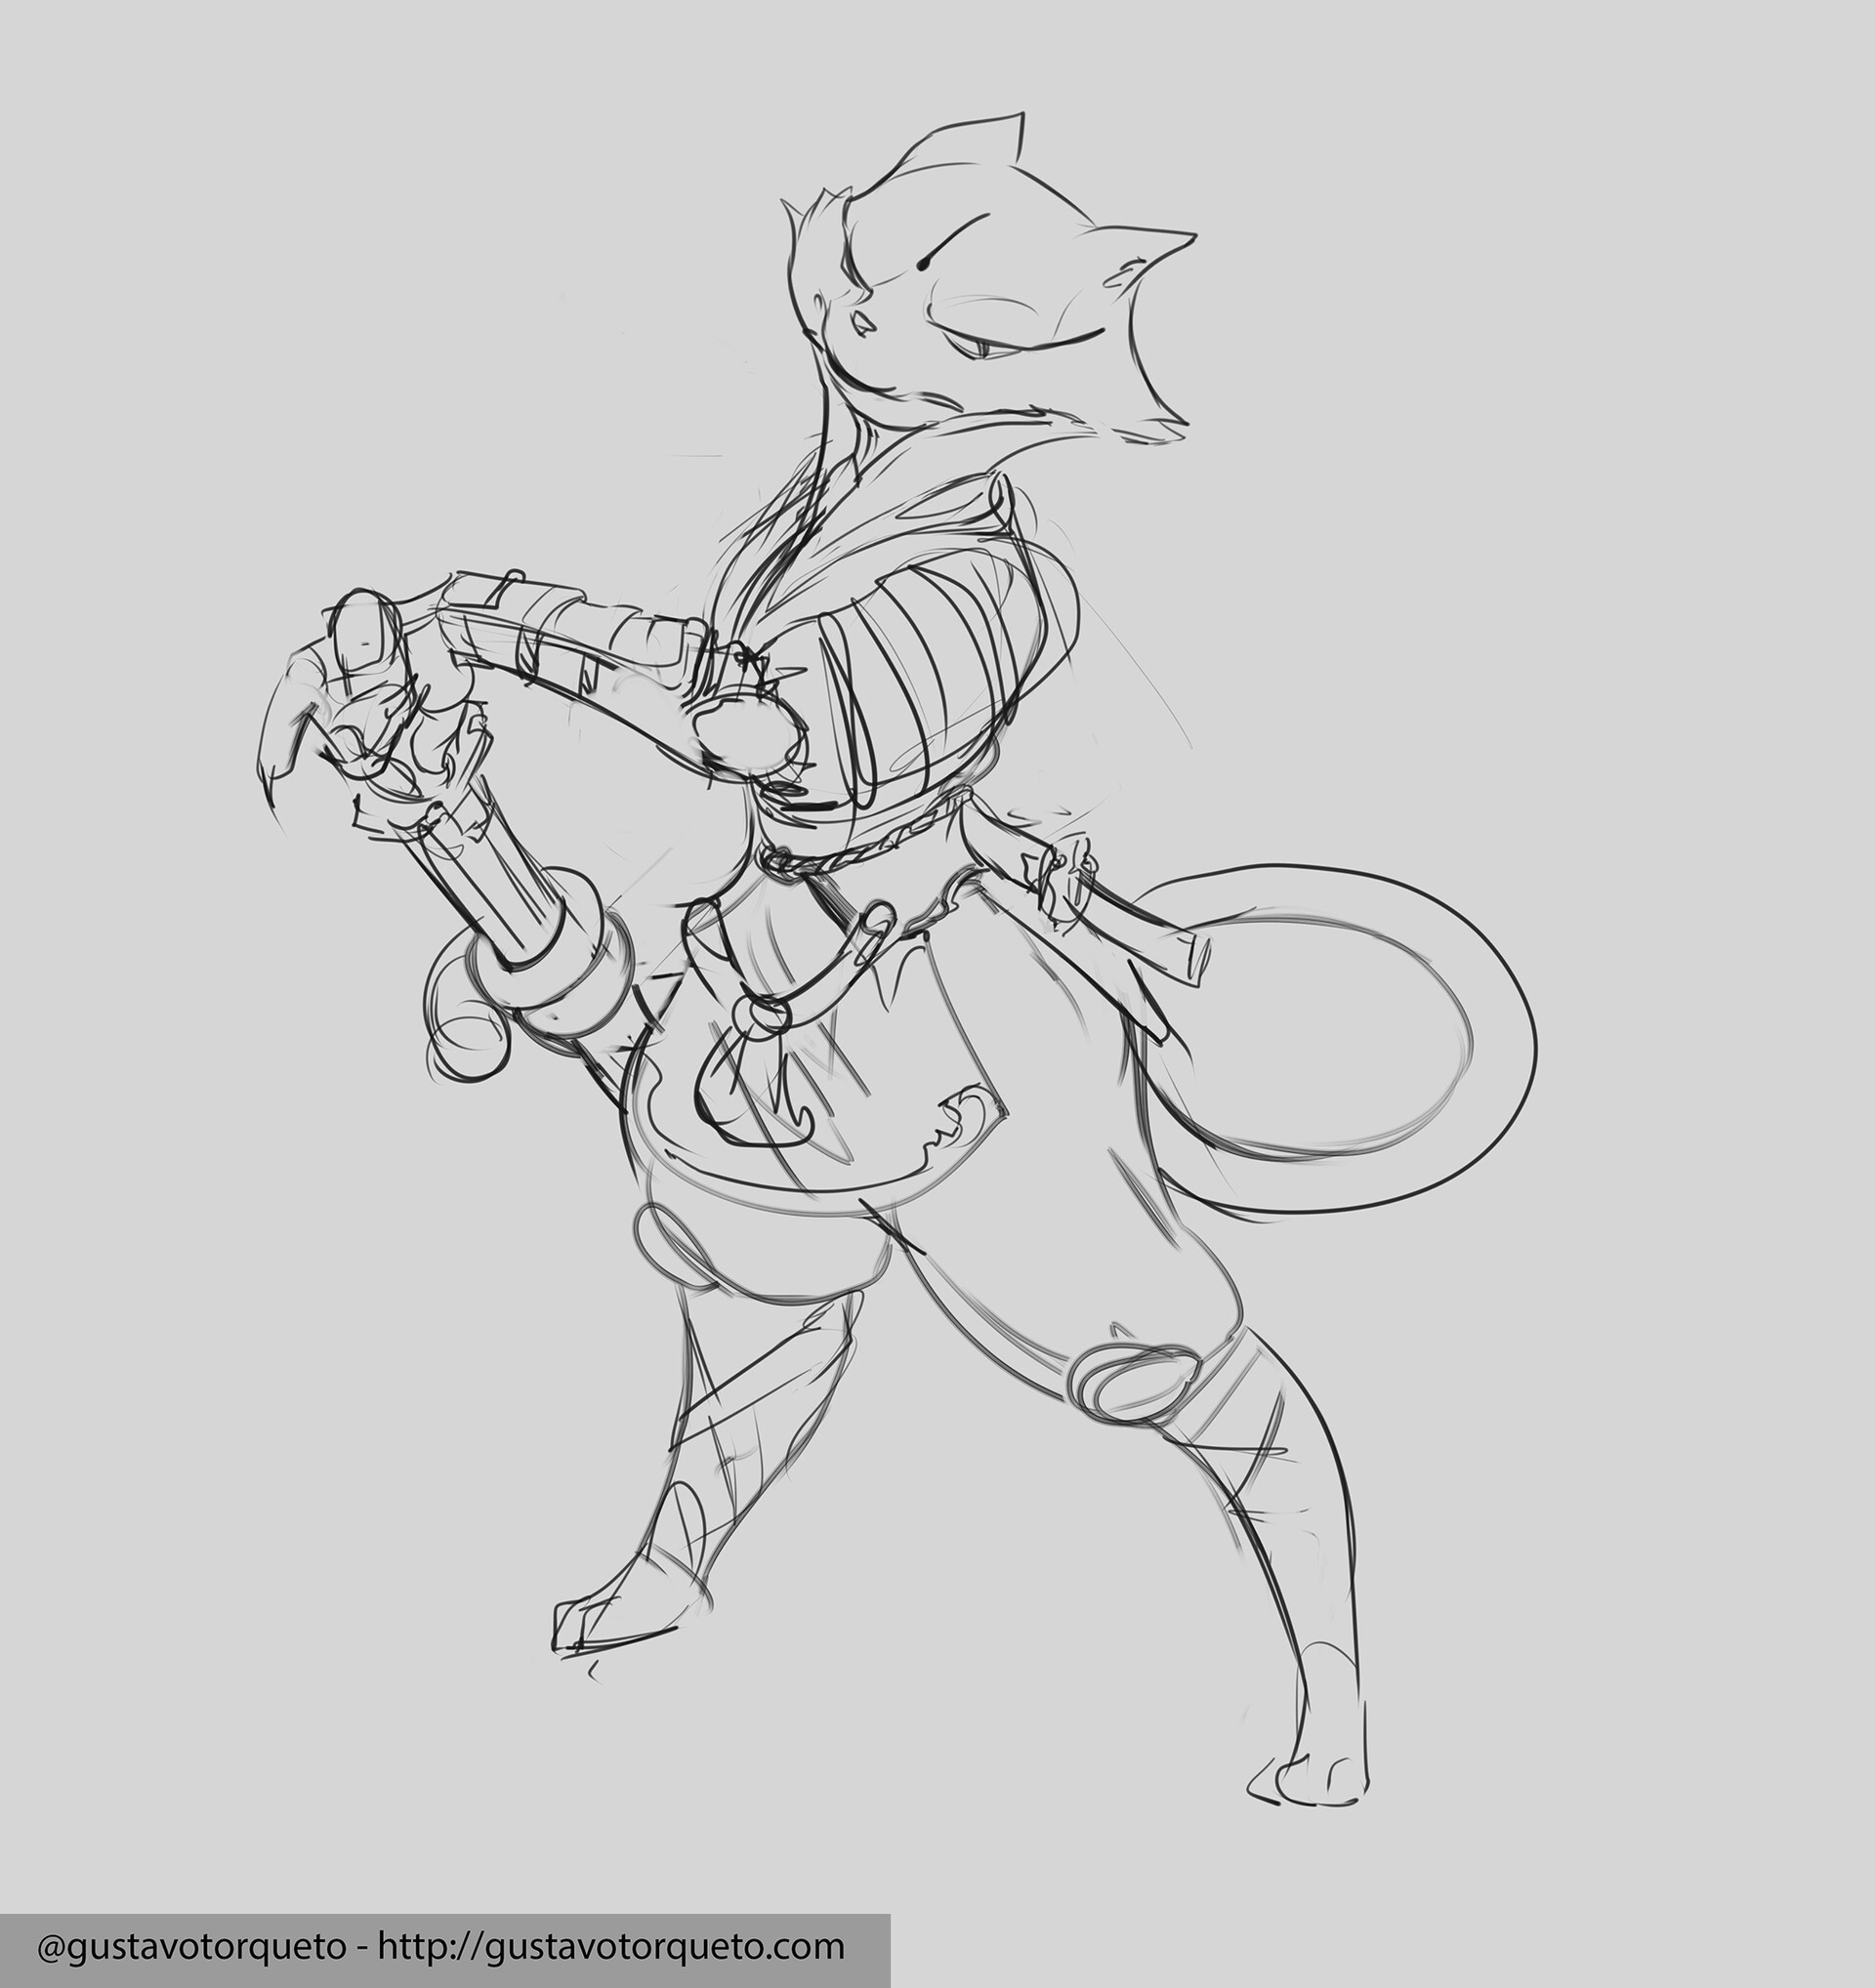 sketch for the character